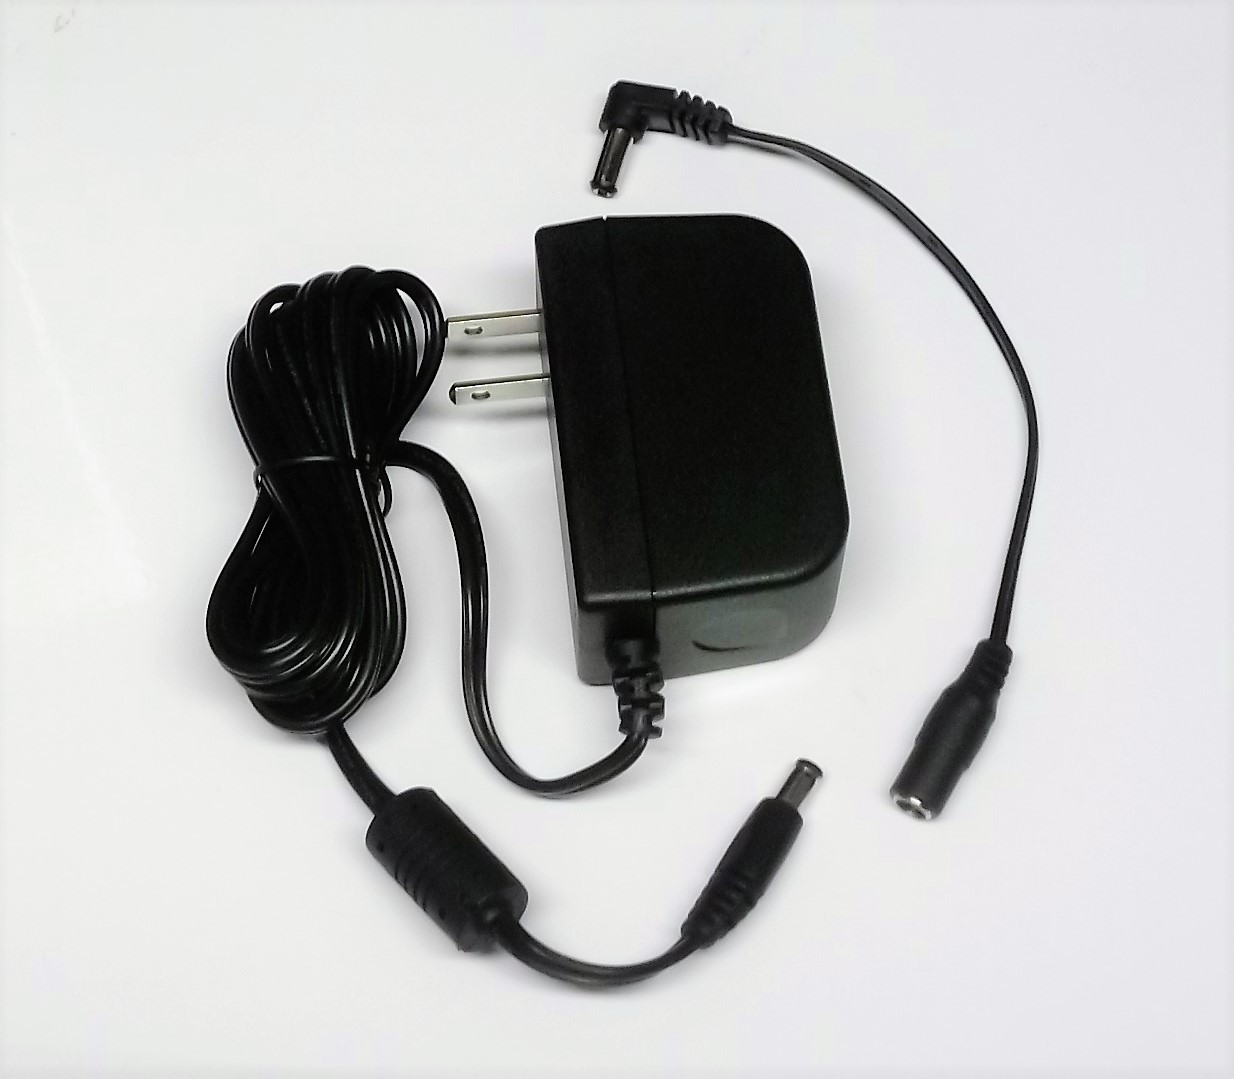 18v 1000ma ac dc adapter for dunlop ecb004 dc brick power supply cord charger power supplies. Black Bedroom Furniture Sets. Home Design Ideas